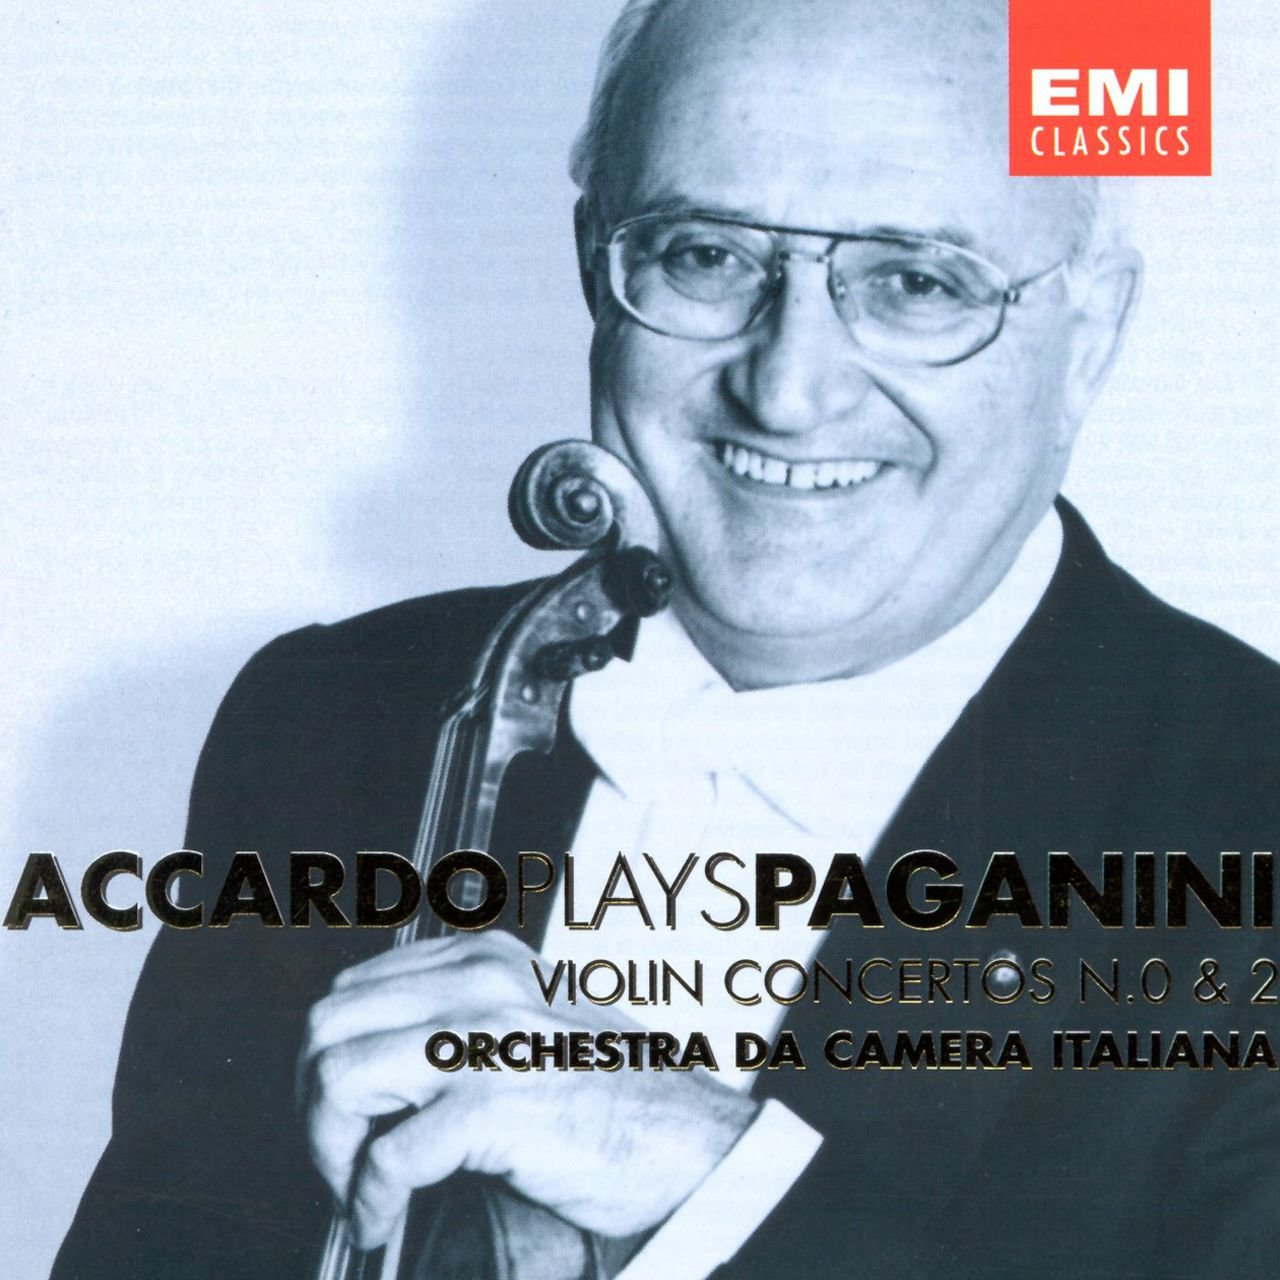 Accardo Plays Paganini - Vol. 1